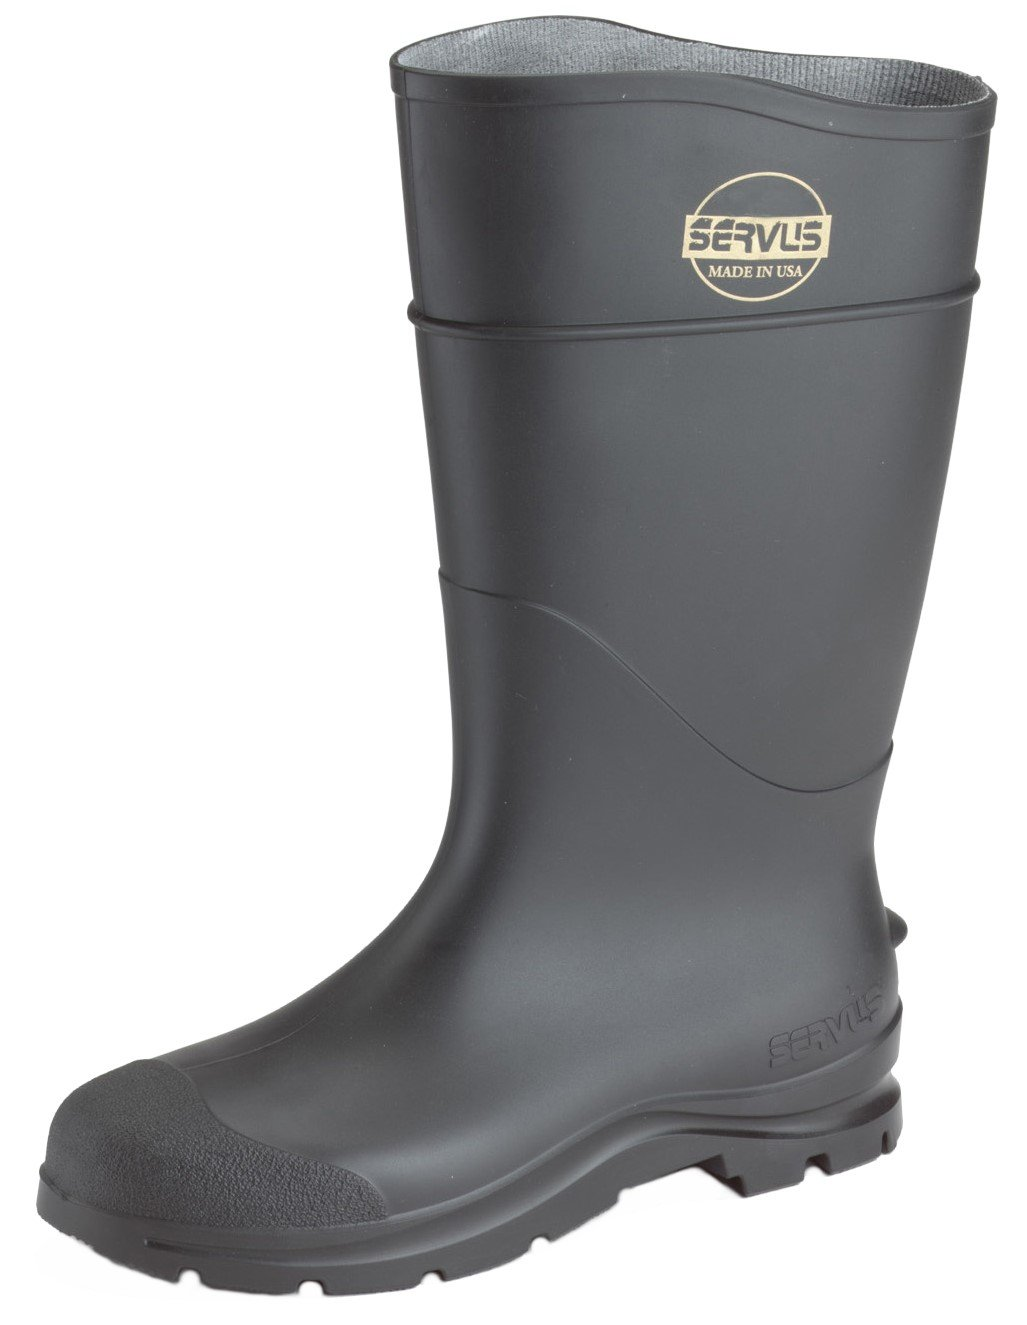 """6/PACK NORCROSS SAFETY 18821-11 SZ 11 BLK STEEL TOE BOOT 16"""""""